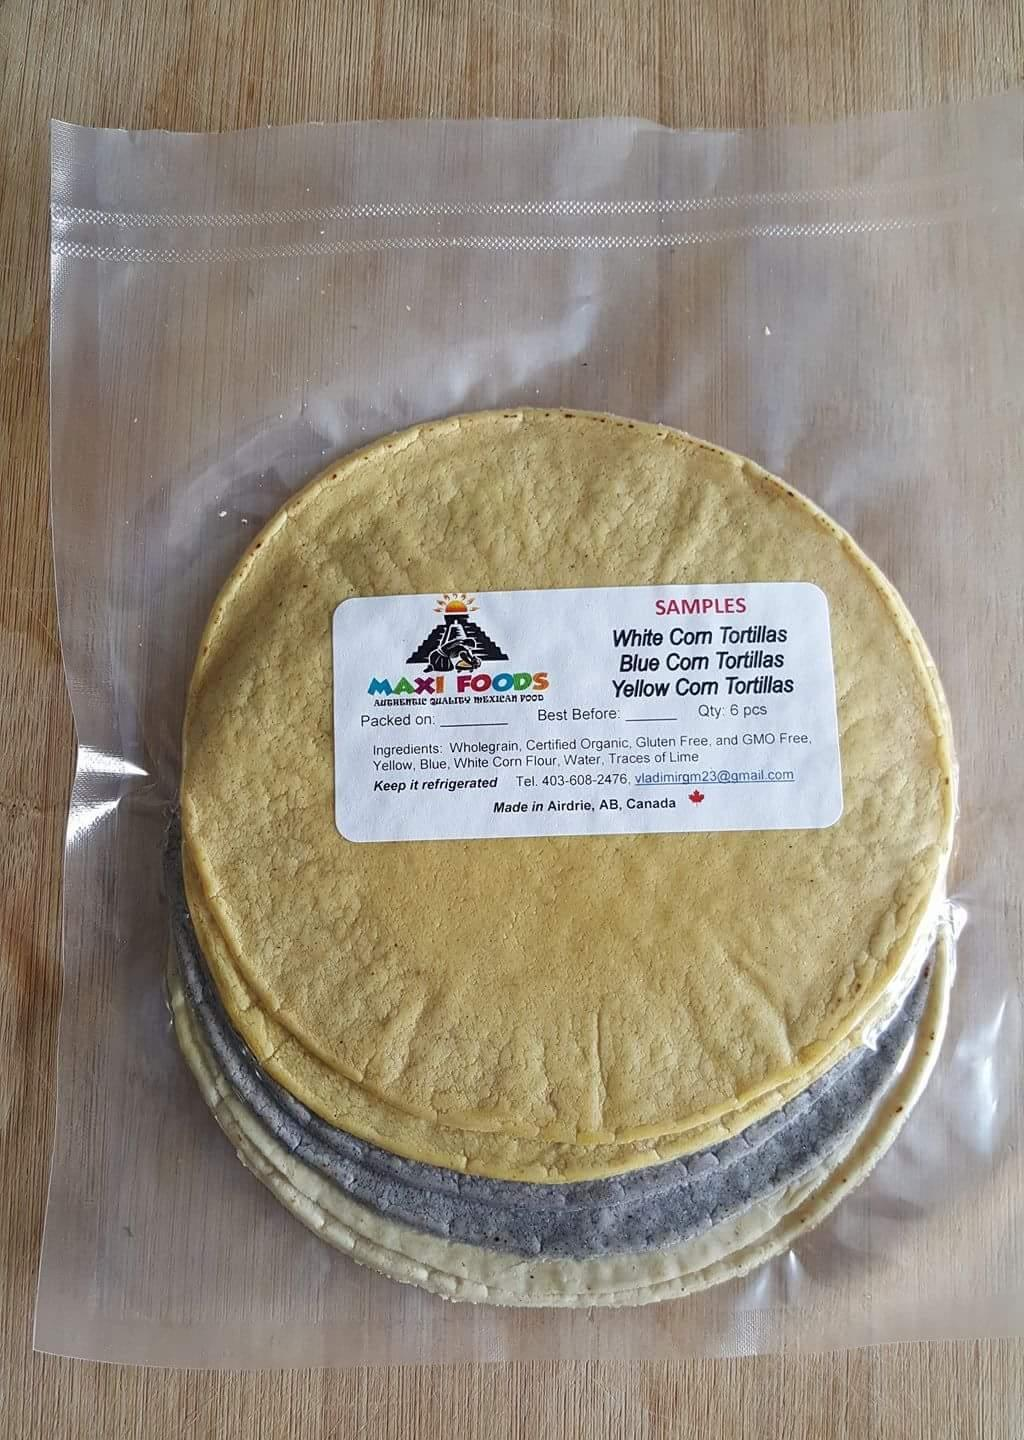 organic store calgary with 6y7c2nj3 Organic Fresh Tortillas on Miguel Torres Las Mulas Organic Sauvignon Blanc 2015 Chile besides Marley Coffee Get Stand moreover Coffeeshops You Need To See Before You Die as well 1265540 Target E2 80 99s Stores Likely To Stay Empty For  E2 80 98some Time E2 80 99 furthermore Shop Furniture Online For Home Office Kids And More.